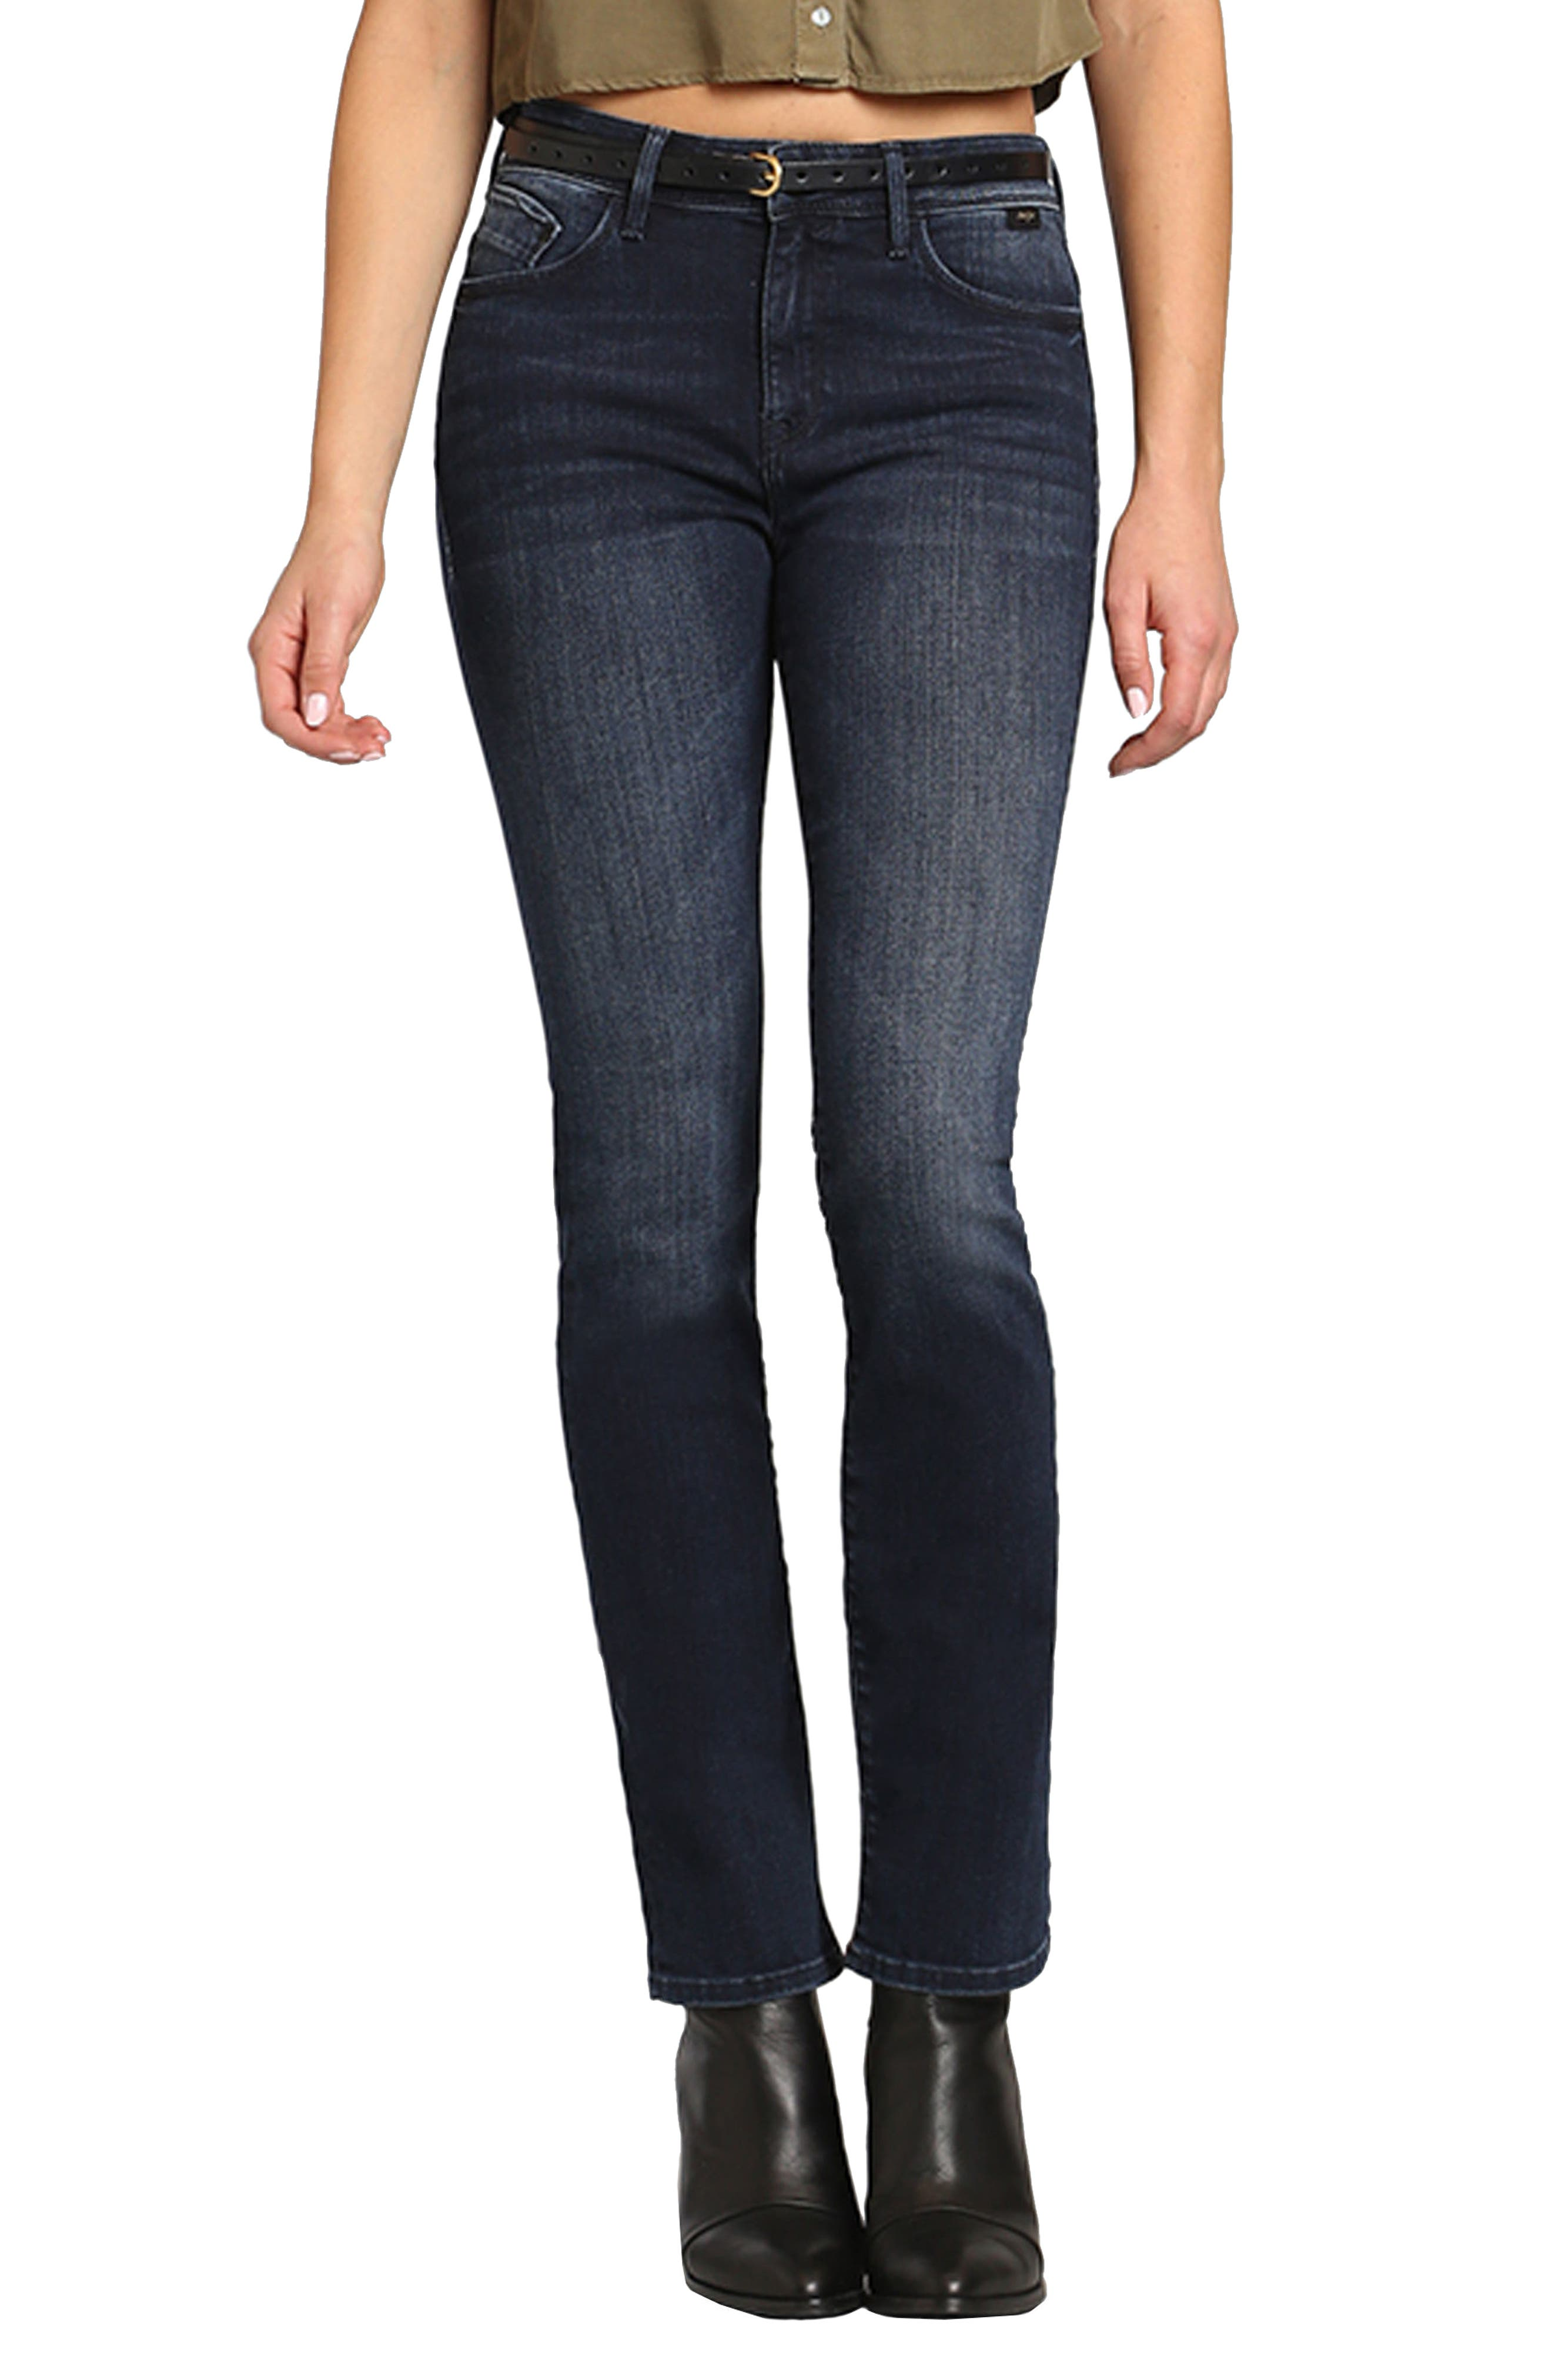 Kendra High Waist Straight Jeans,                             Main thumbnail 1, color,